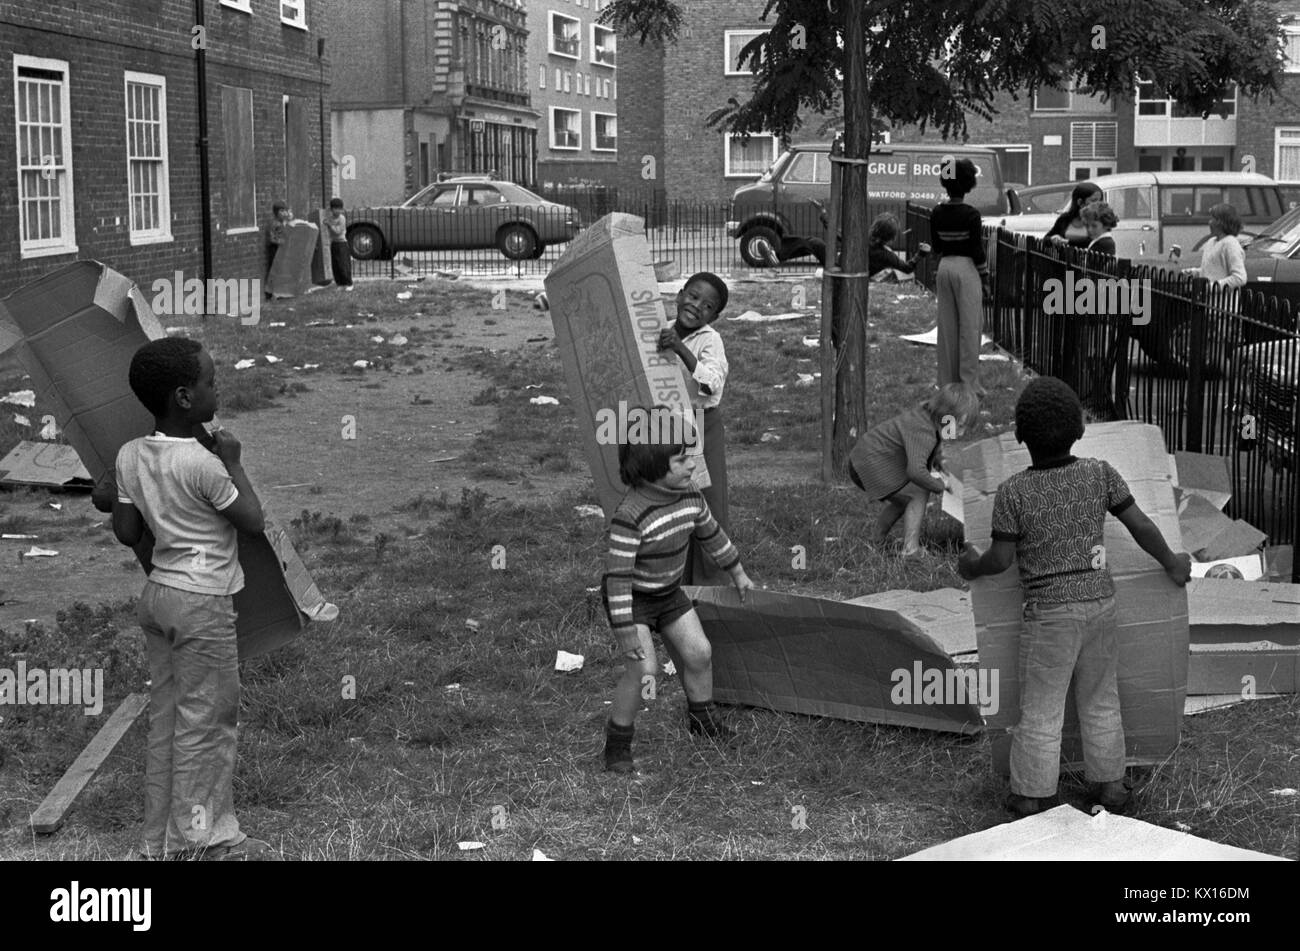 Preteen group of boys playing  together on their council estate South London 1970s Britain  70s UK HOMER SYKES - Stock Image